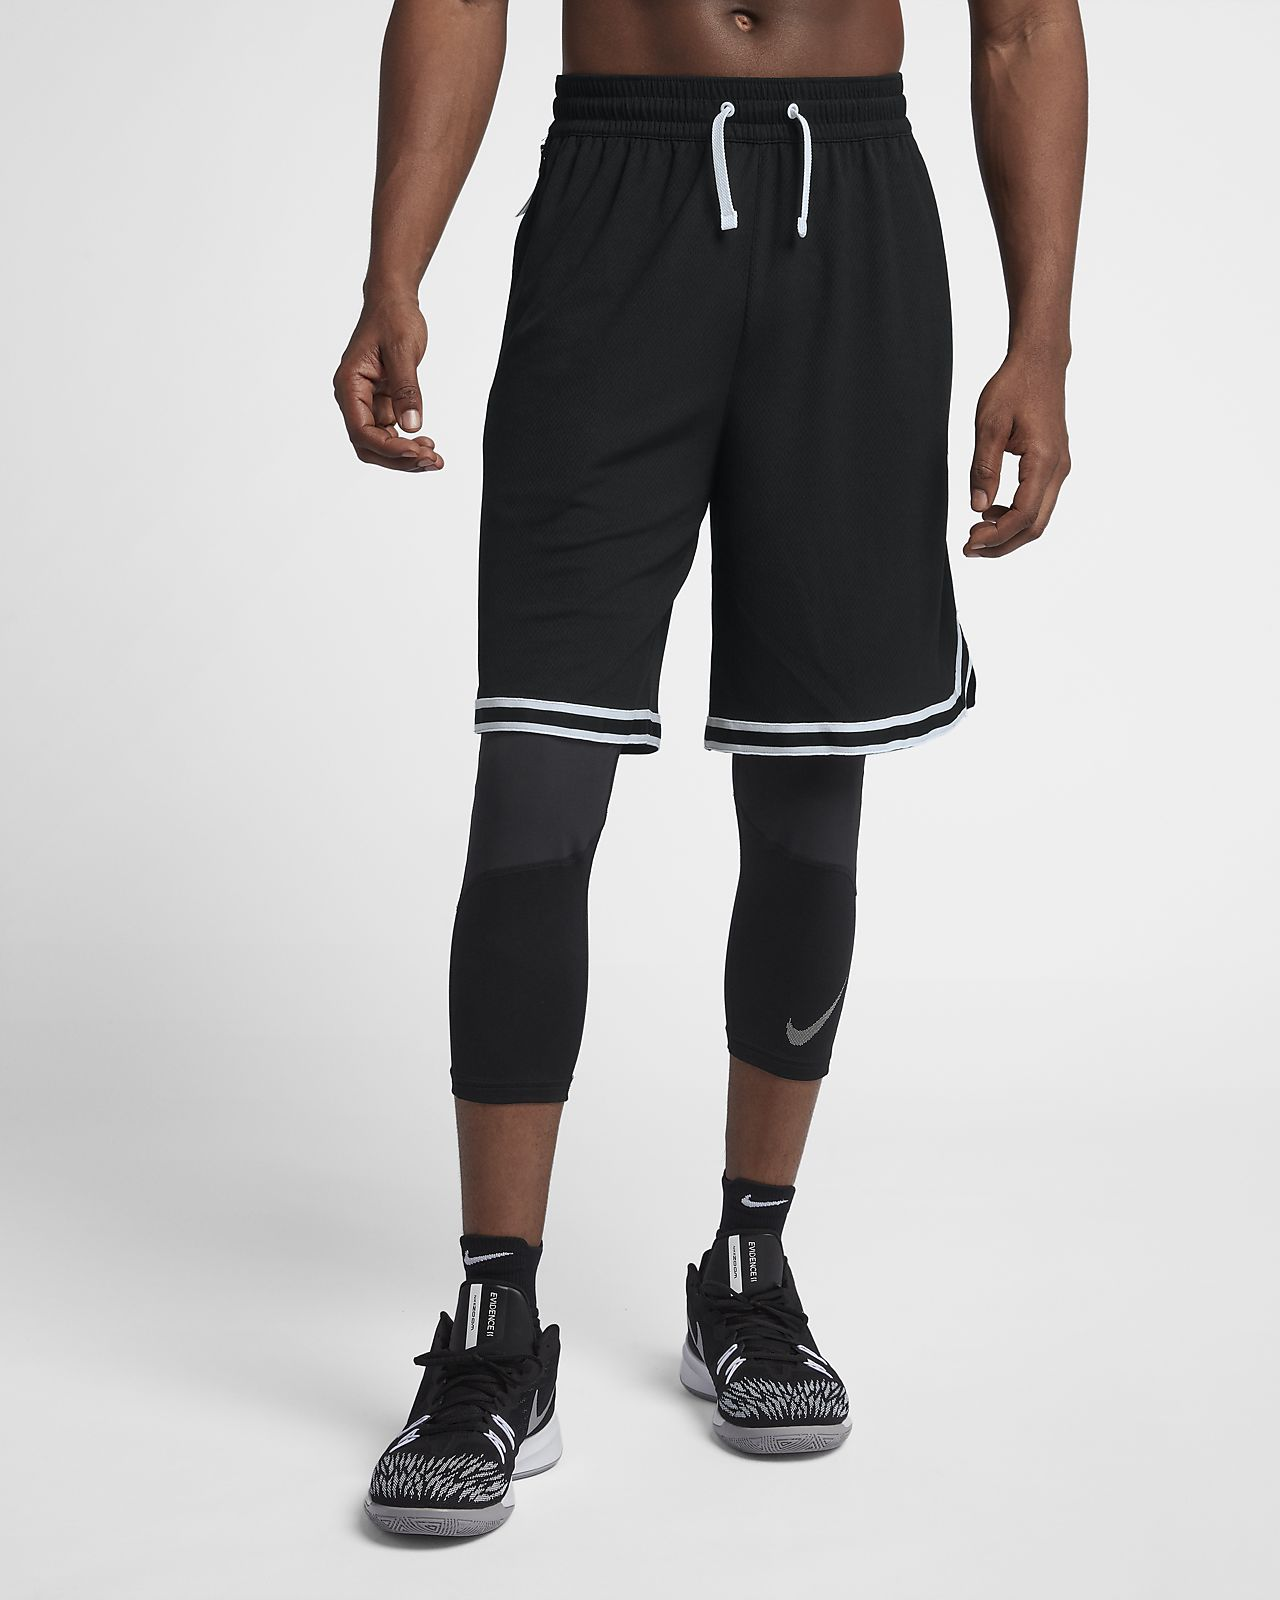 b21151a39a Nike Dri-FIT DNA Men's Basketball Shorts. Nike.com GB